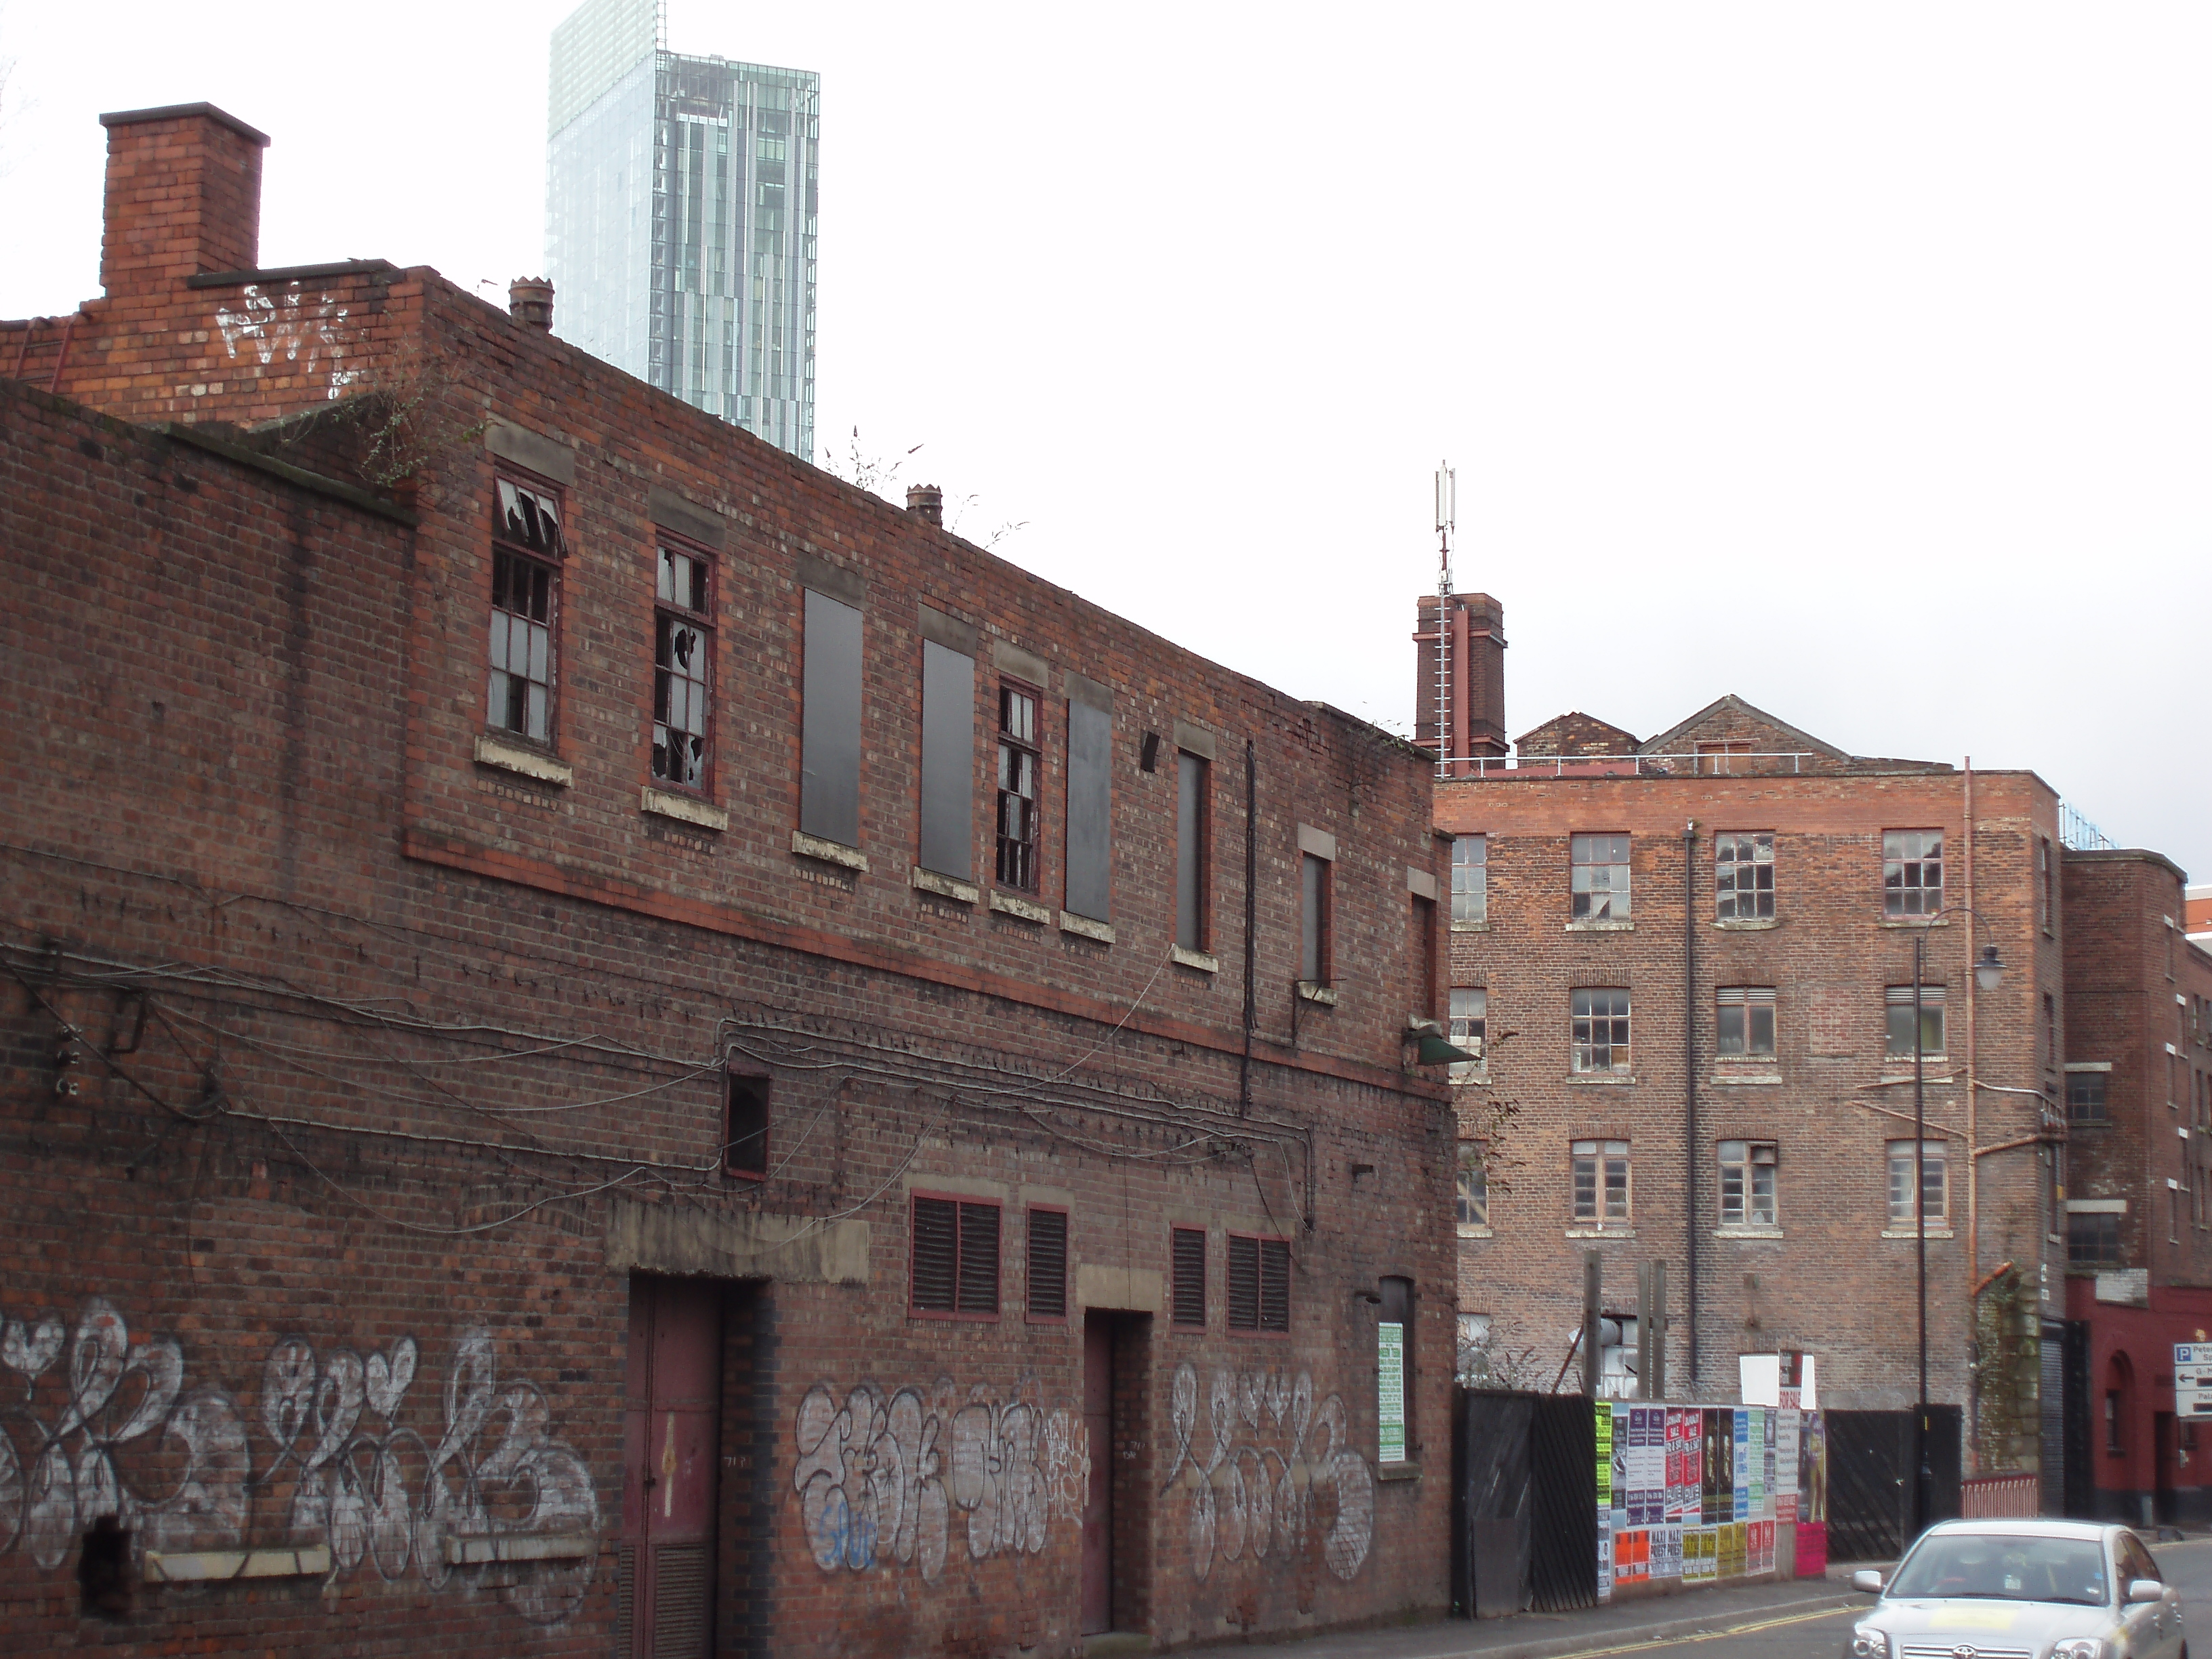 Manchester rundown warehouse with modern hotel and appartments in the background